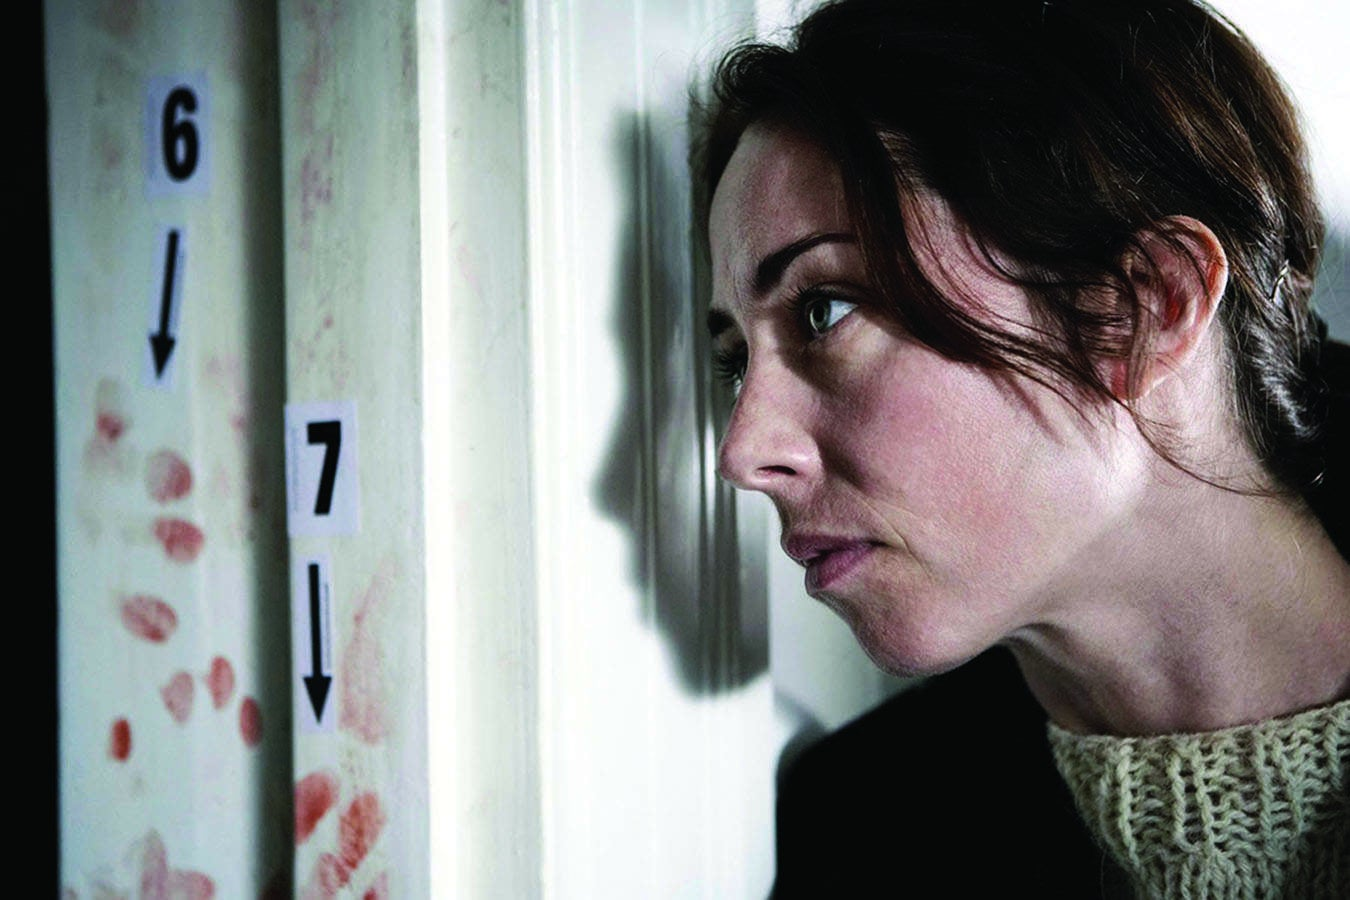 In Sarah Lund, the writers behind The Killing created a new modern female